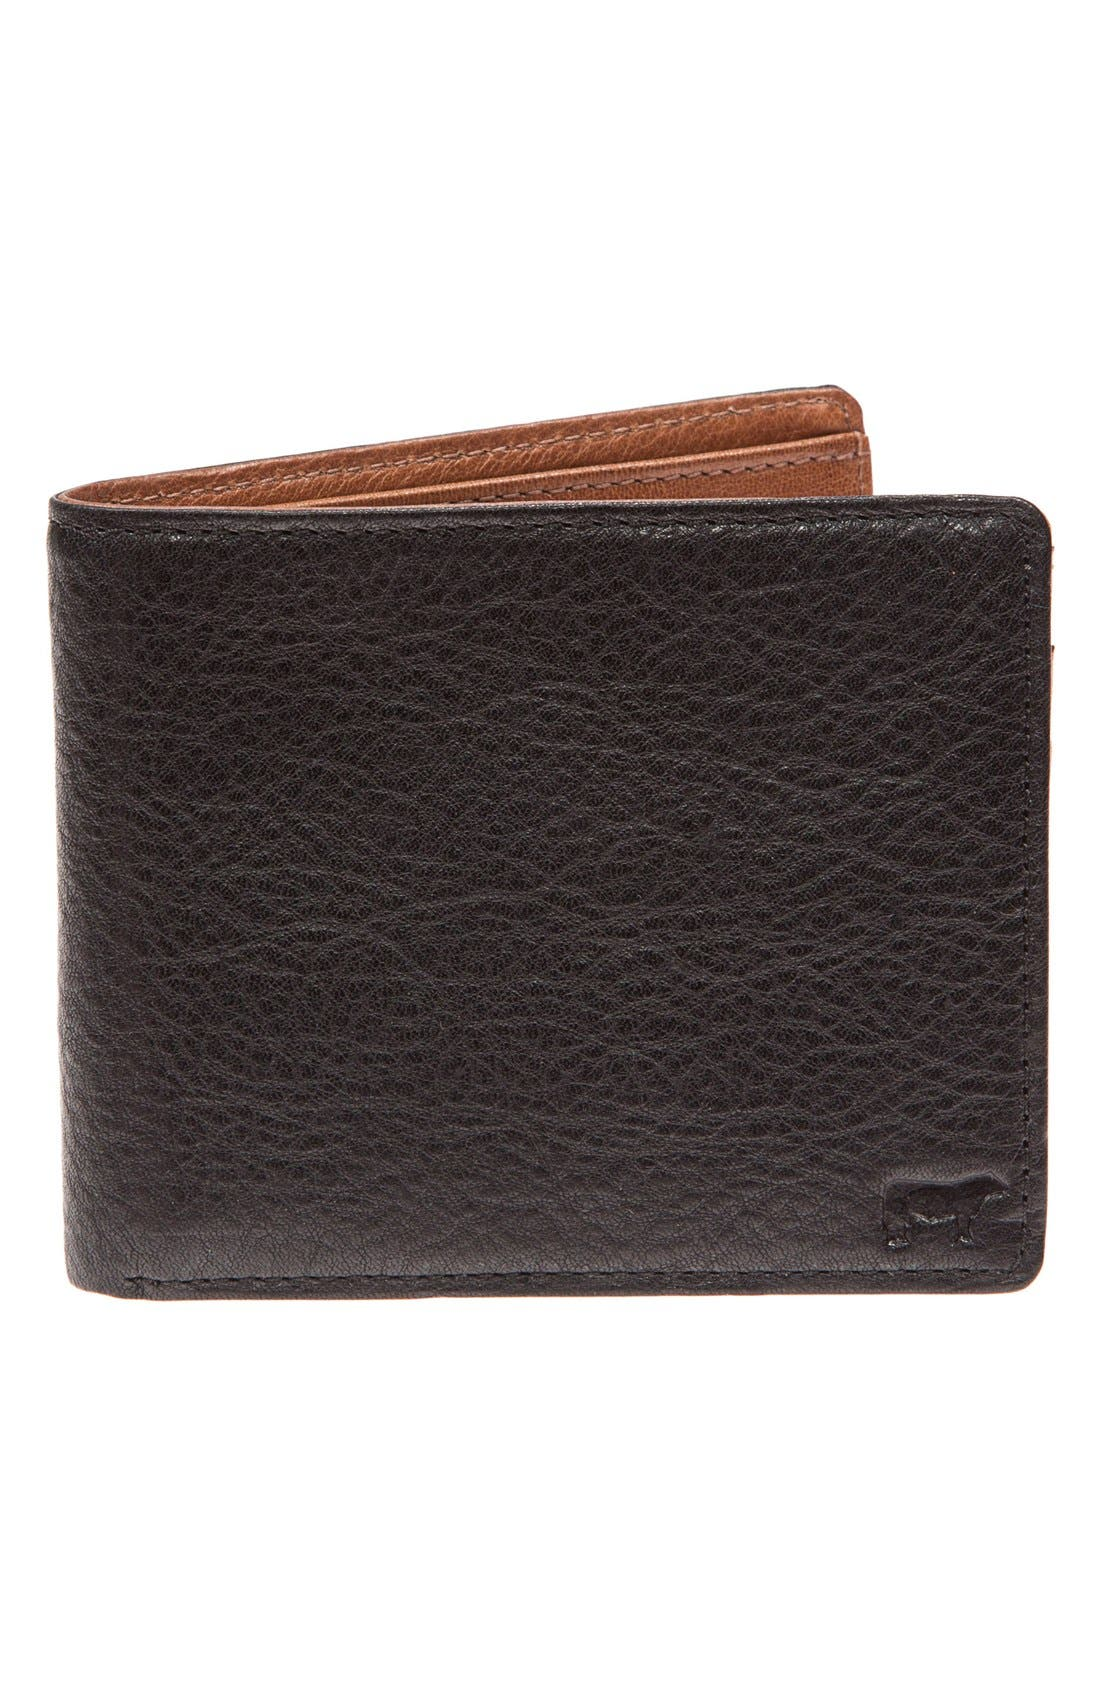 WILL LEATHER GOODS 'Barnard' Wallet, Main, color, 001